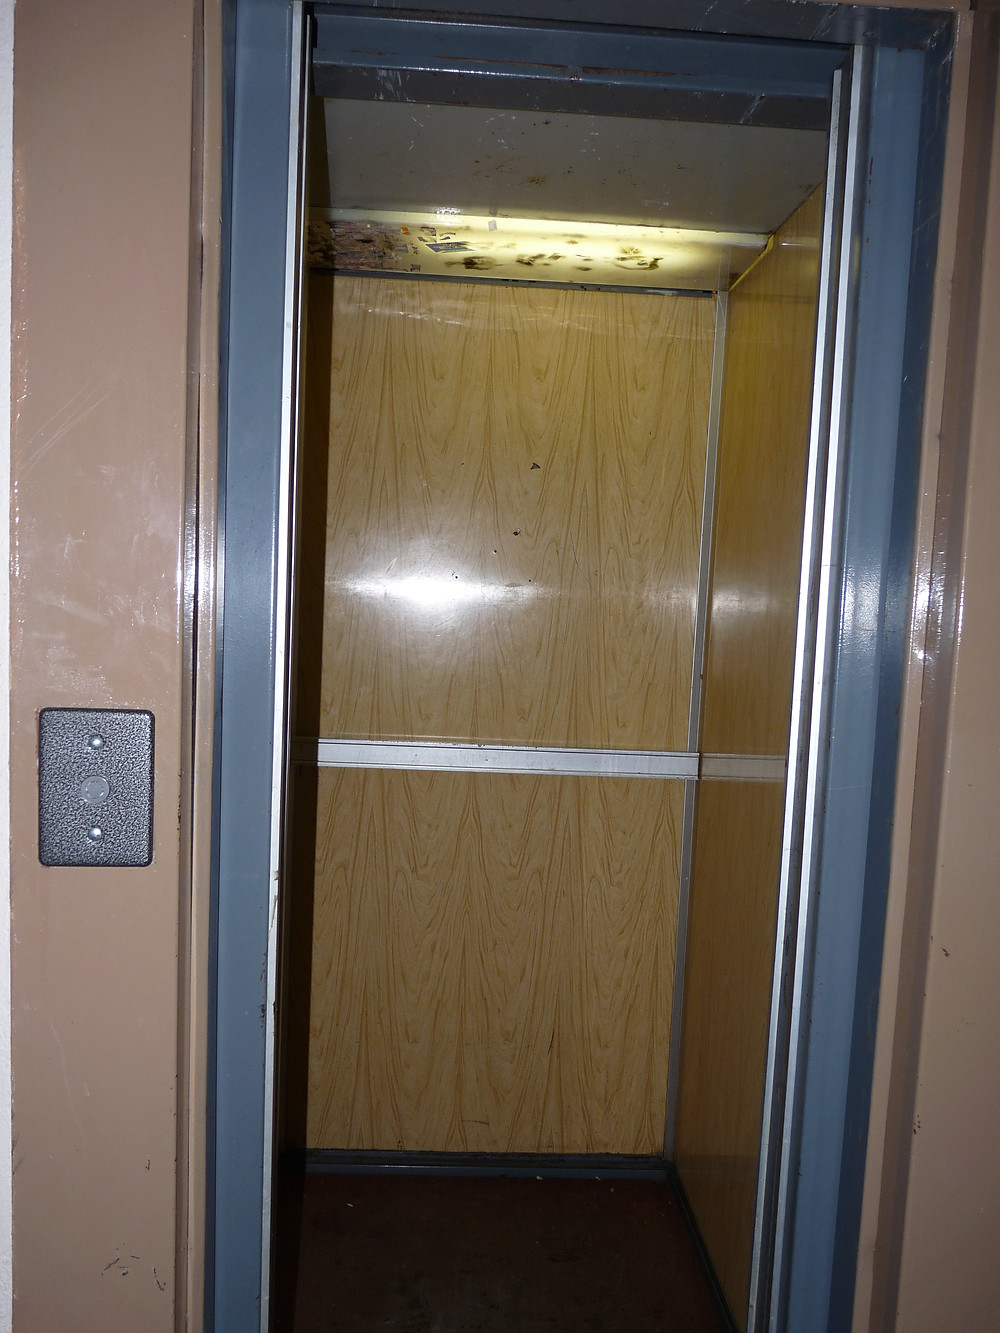 Res Ipsa Loquitor - Elevator malfunctions do not occur in the absence of negligence